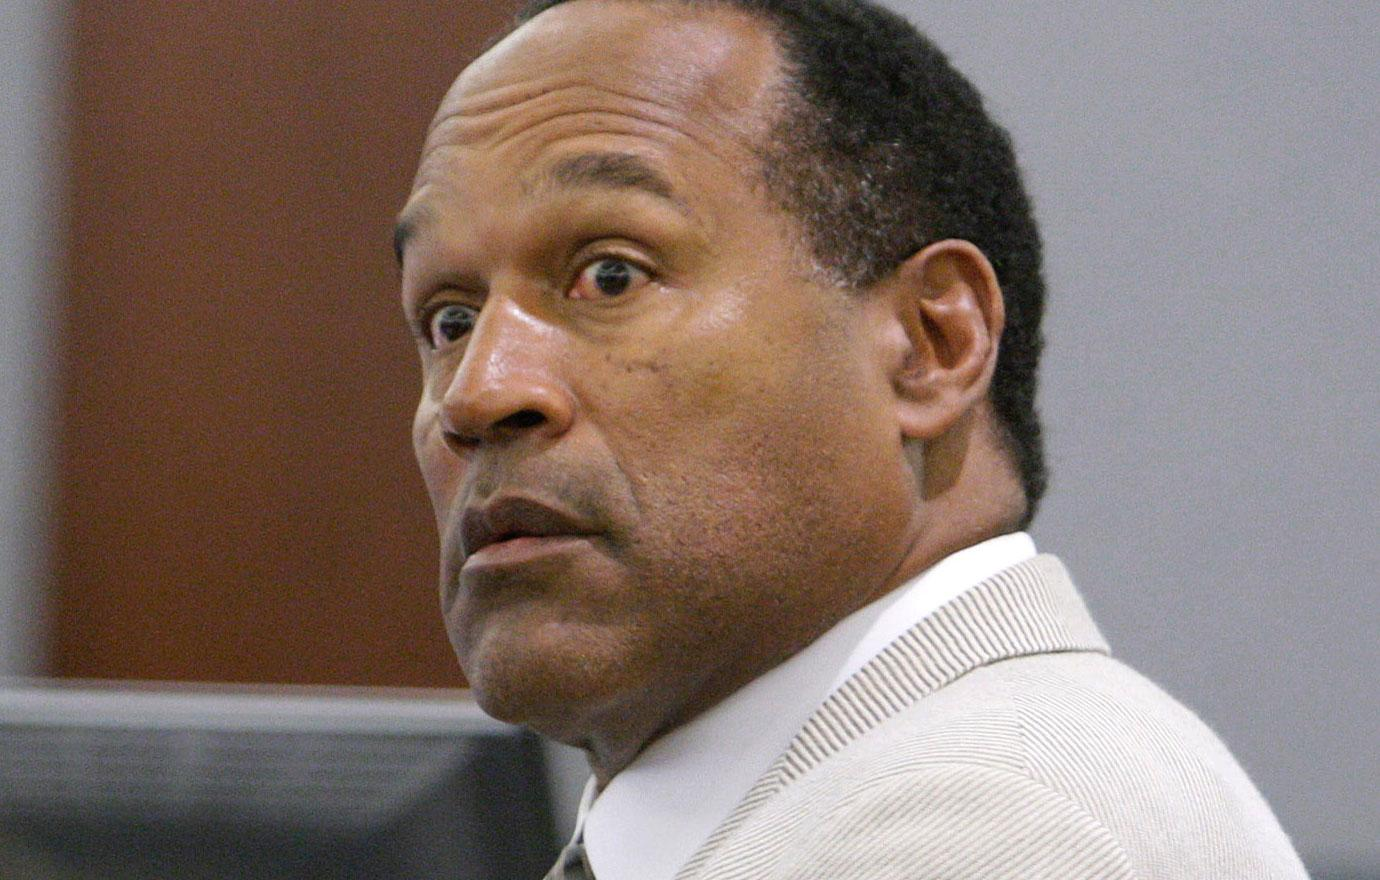 OJ Simpson Sues Las Vegas Cosmopolitan Hotel 100 Million Dollars